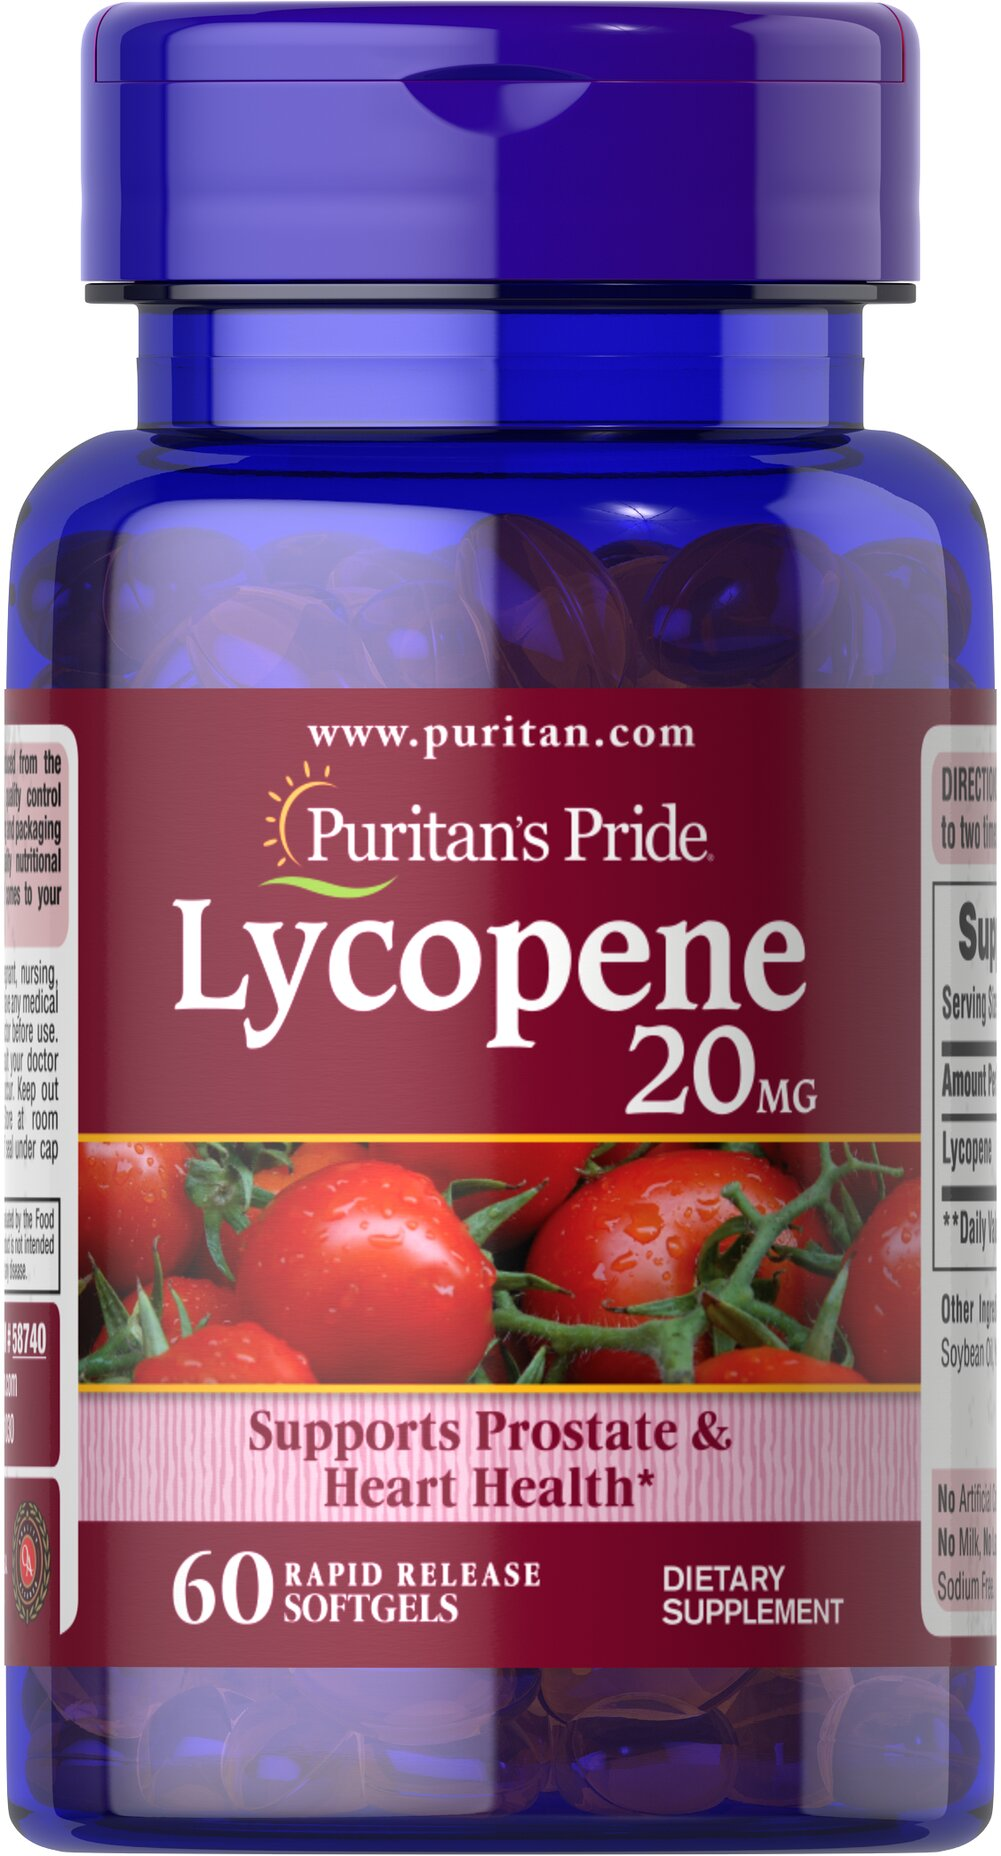 Lycopene 20 mg Thumbnail Alternate Bottle View